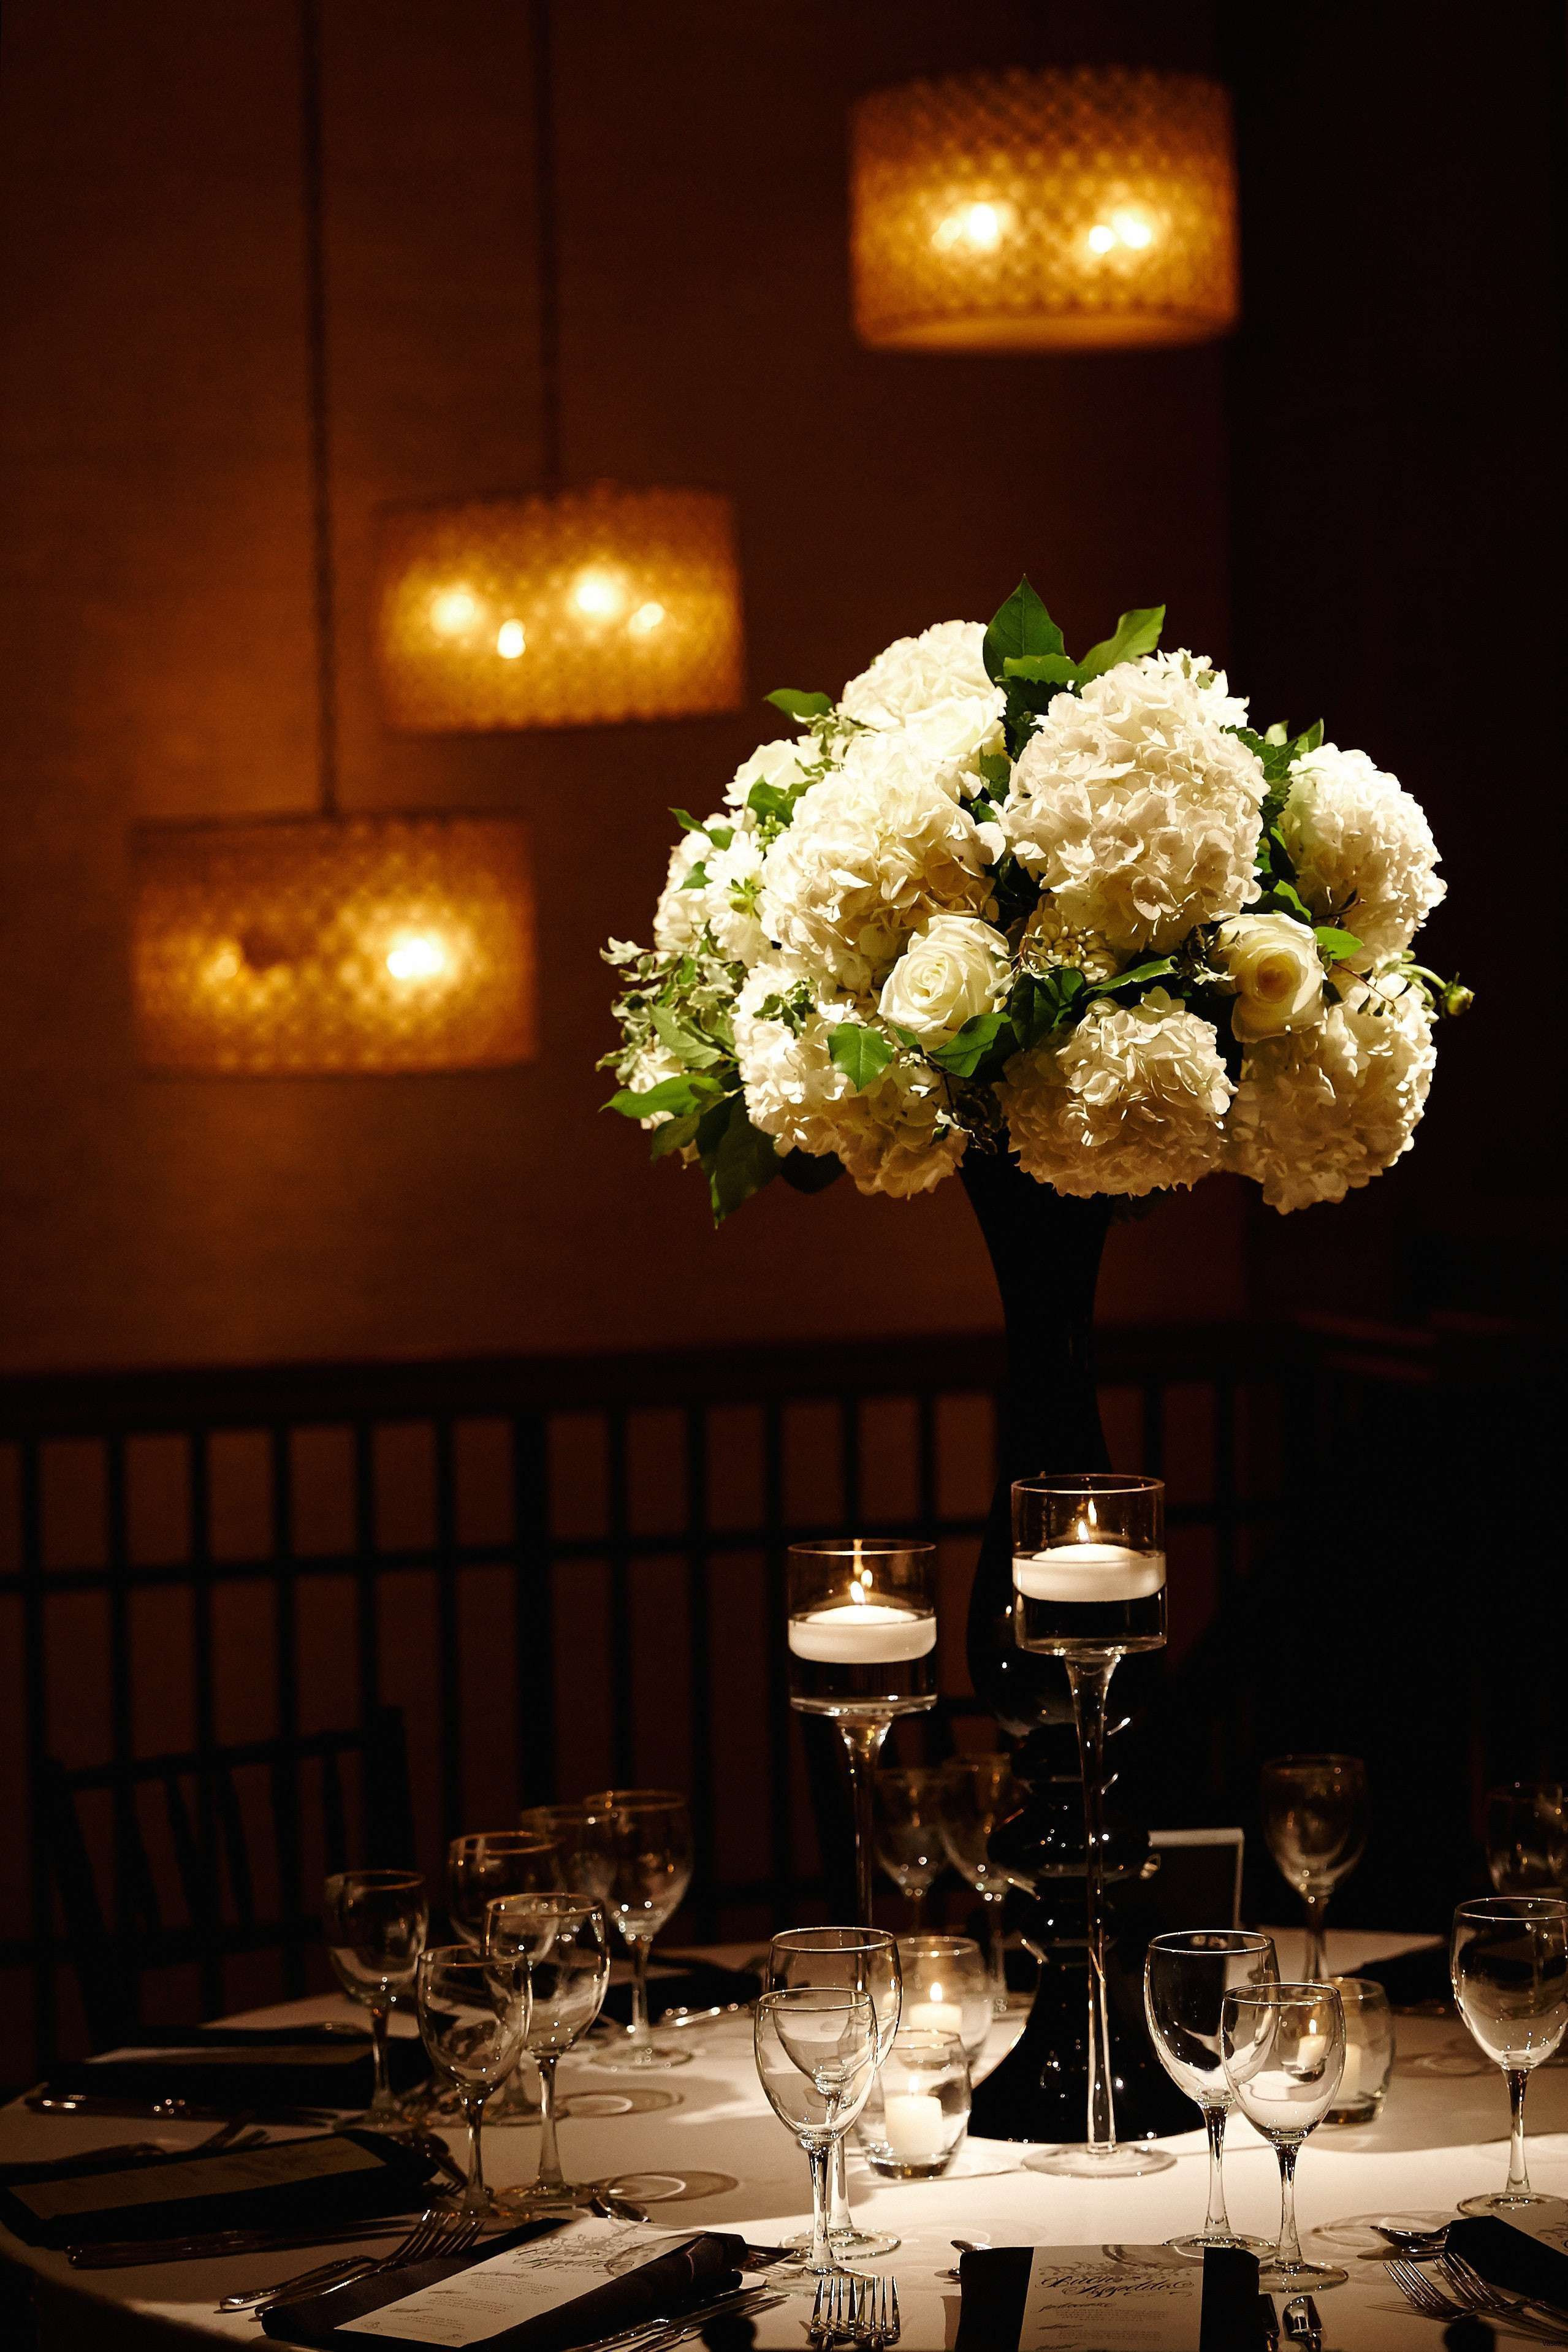 debi lilly vases for sale of black and white vases cheap gallery silver wedding table decorations for black and white vases cheap pictures wedding room decoration simple best il fullxfull h vases black